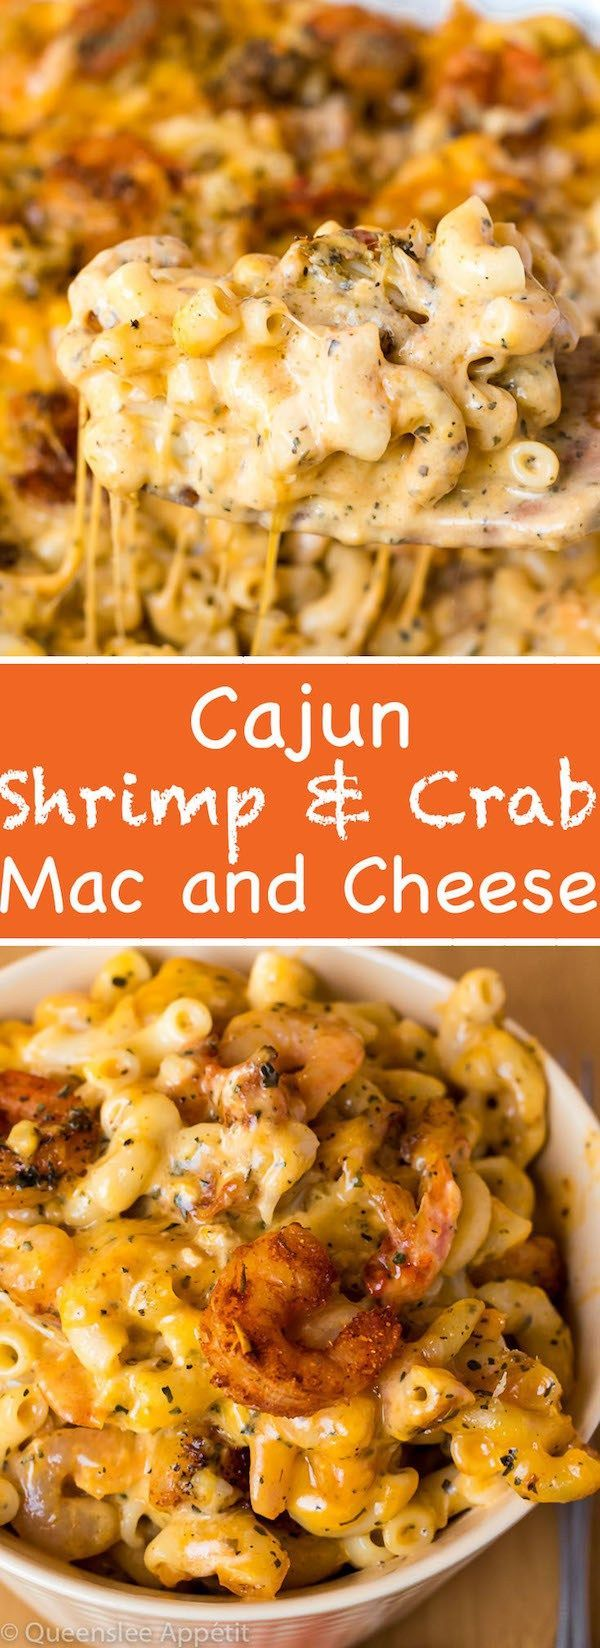 Cajun Shrimp and Crab Mac and Cheese ~ Recipe | Queenslee Appétit #shrimpseasoning